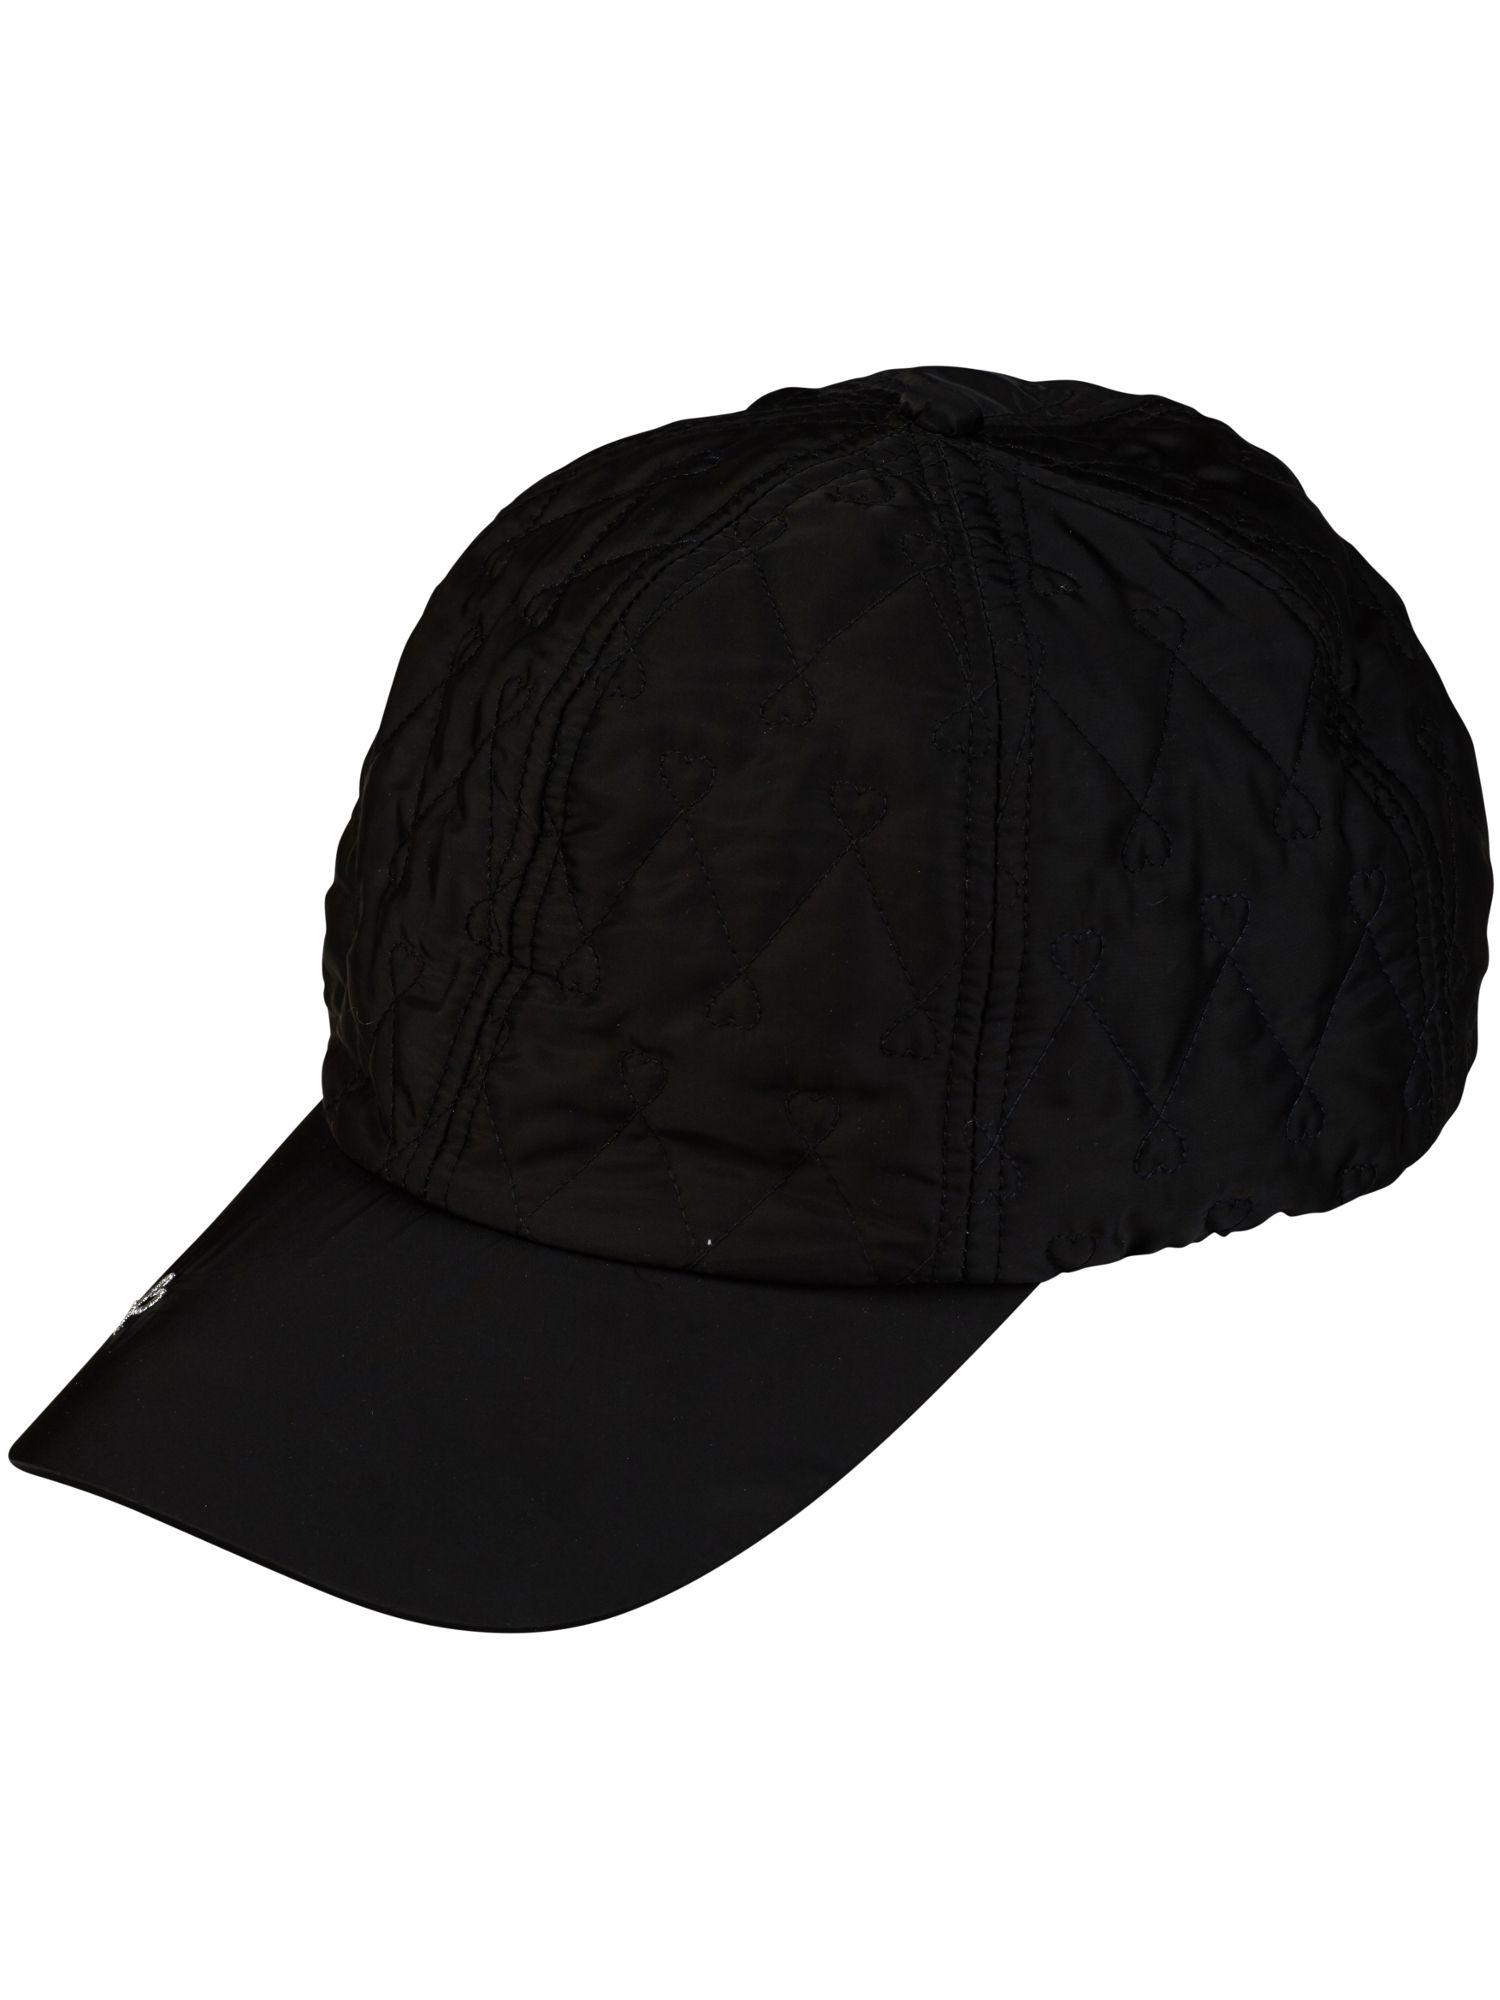 Daily Sports Jolie Hat, Black